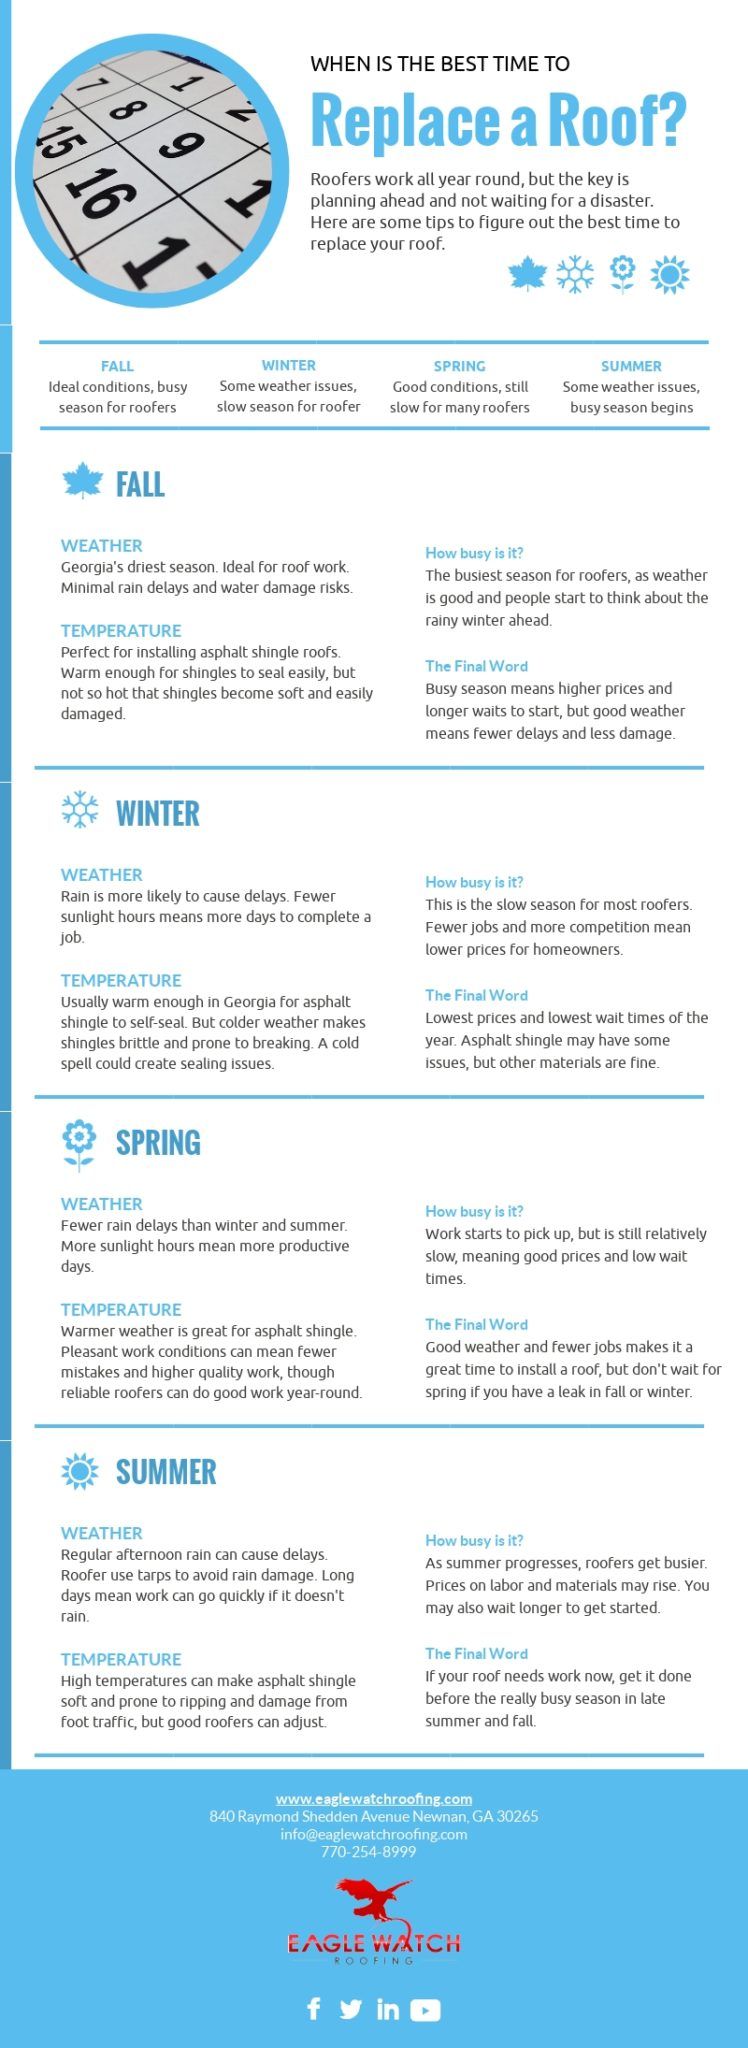 When is the Best Time to Replace a Roof [infographic]